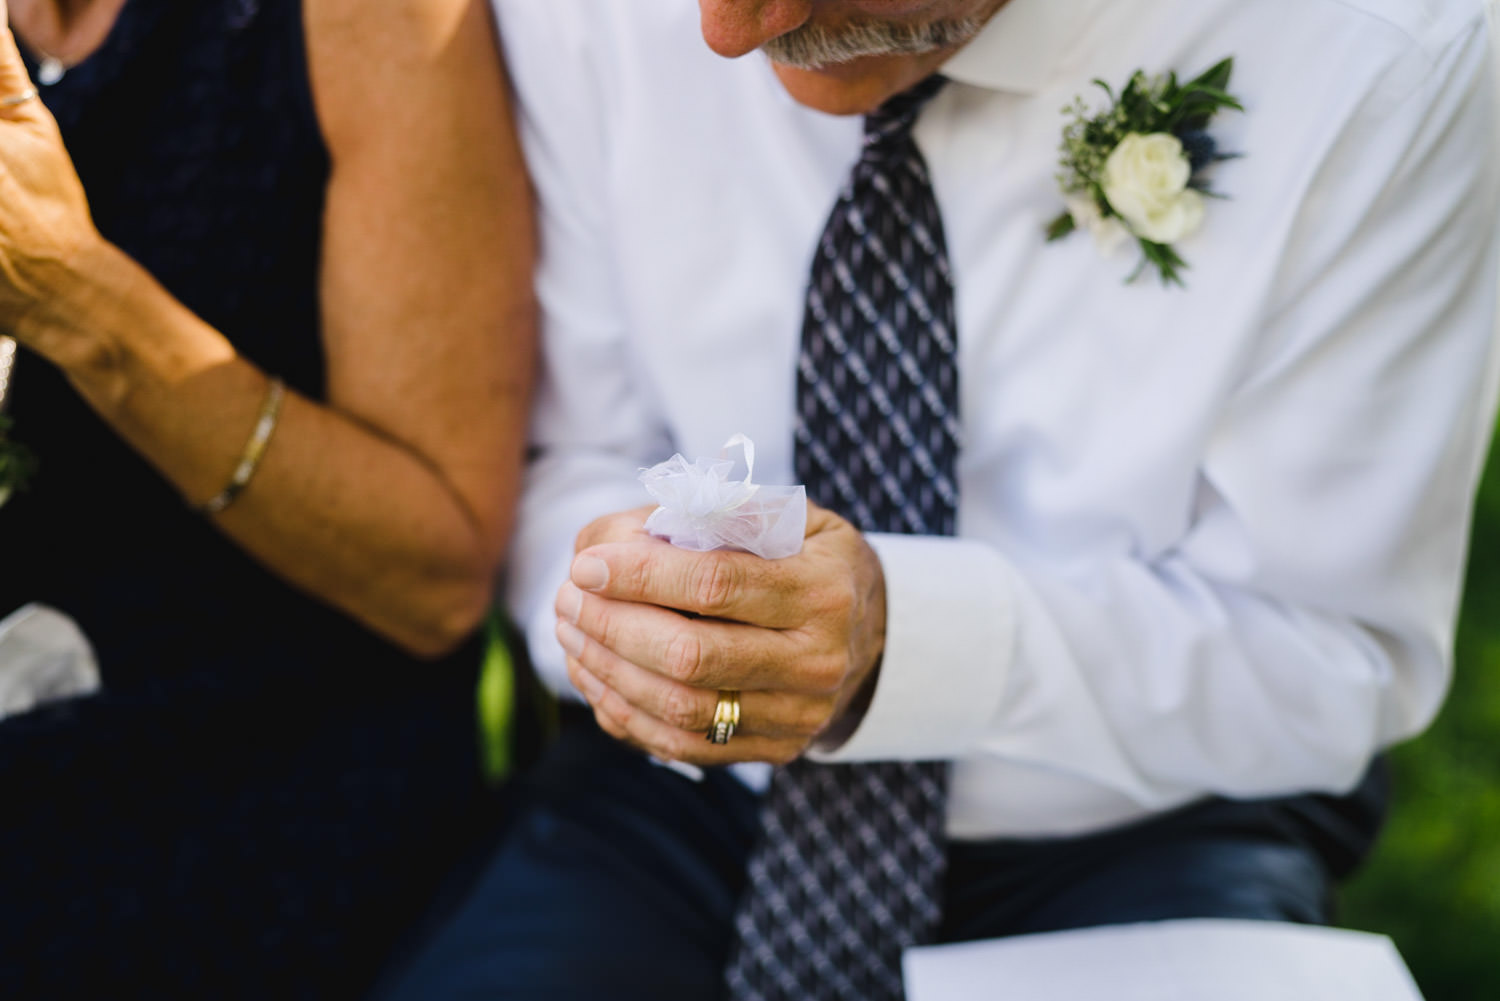 Spring Farm wedding guest at ceremony photo